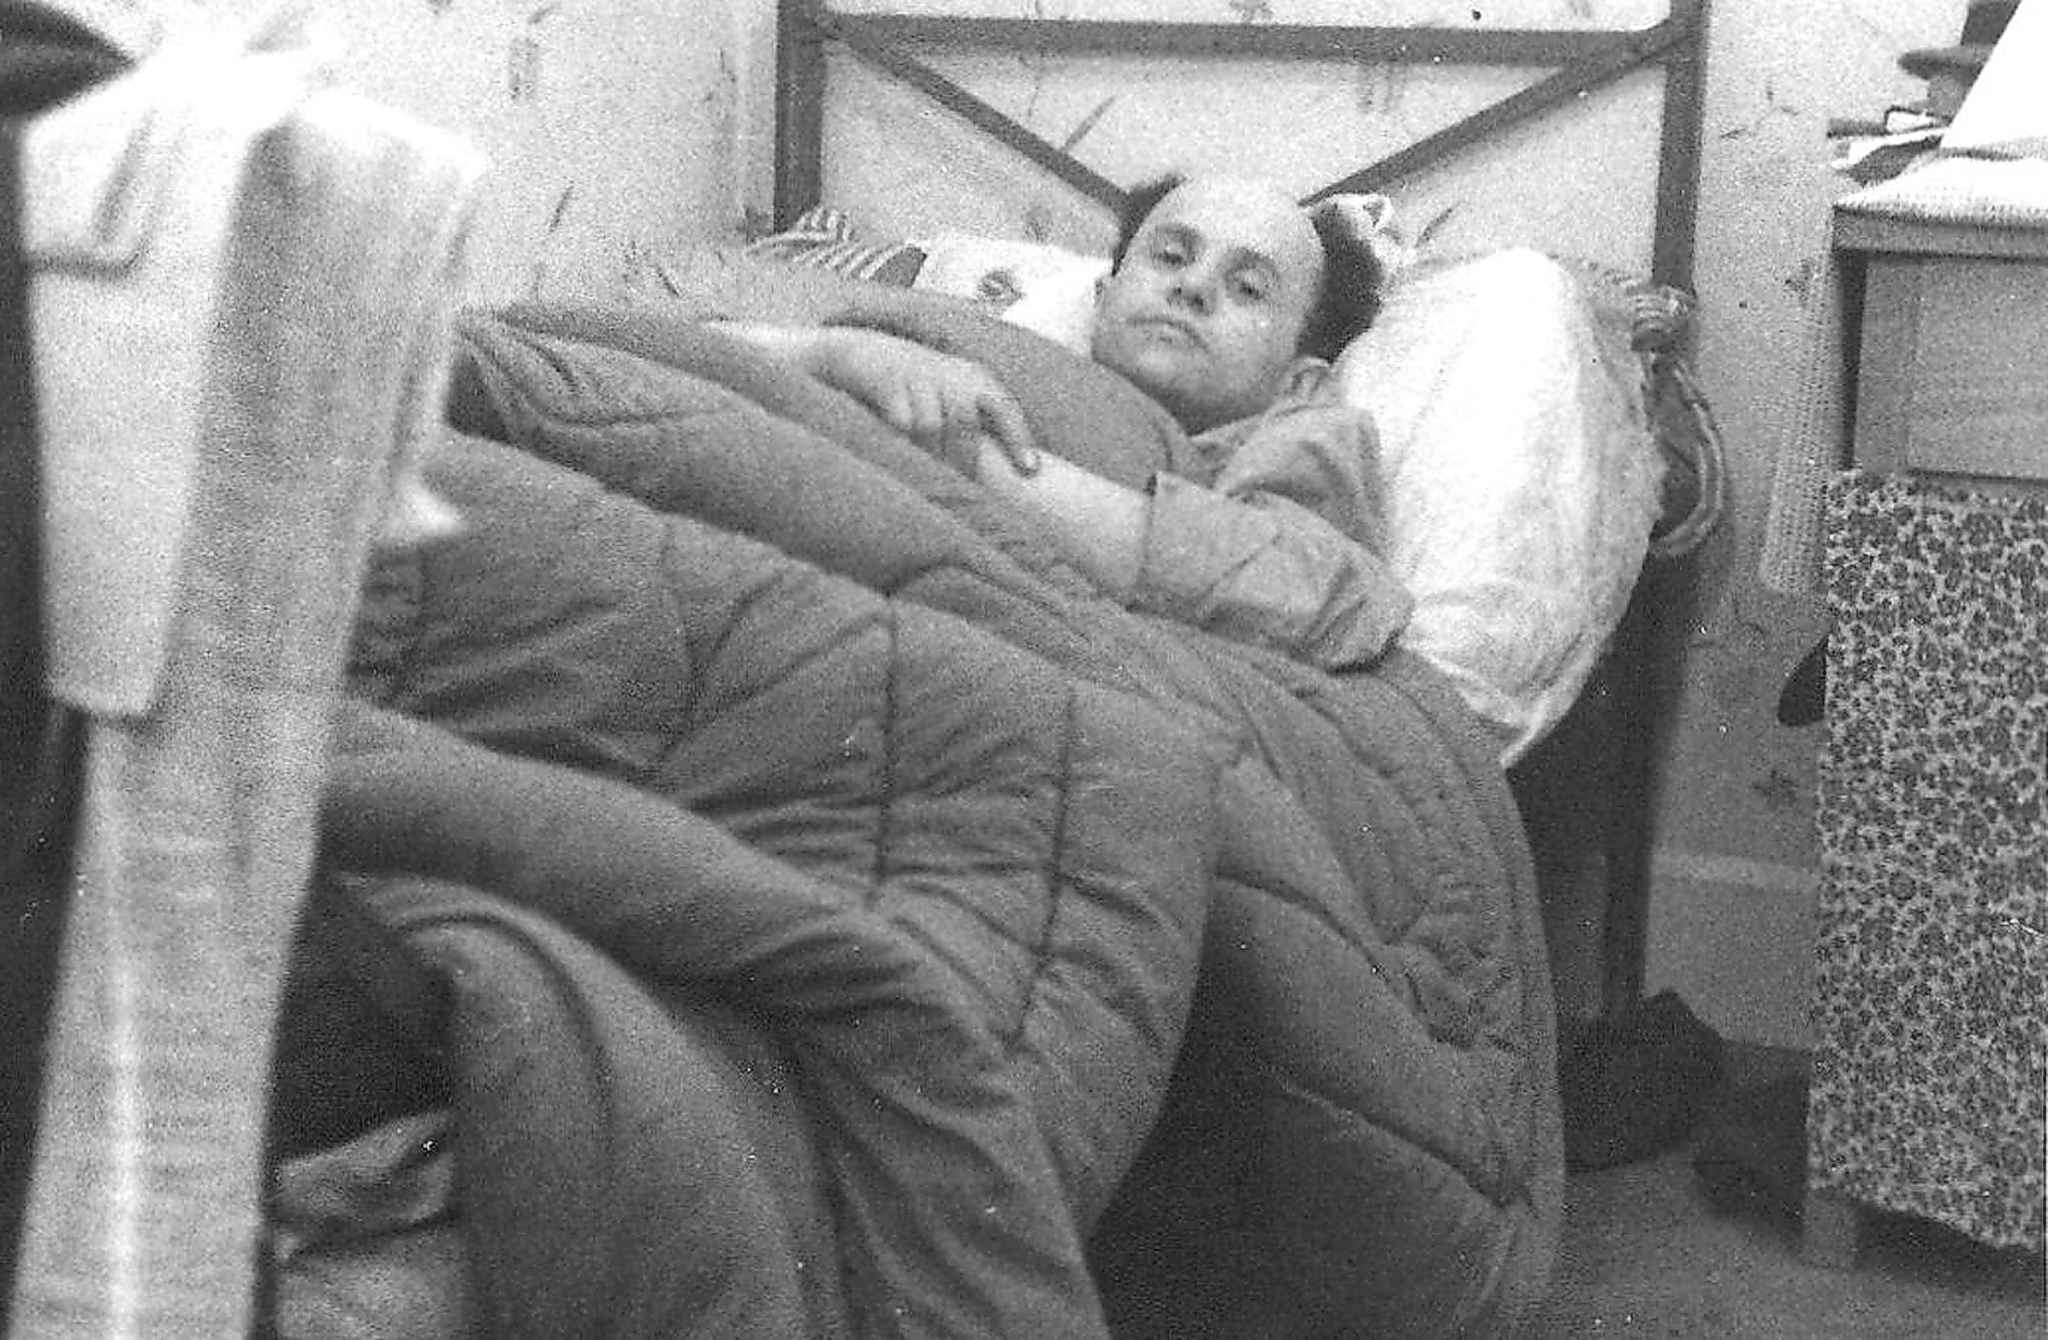 Jarniewski recovering in German hospital after being liberated from Dachau.